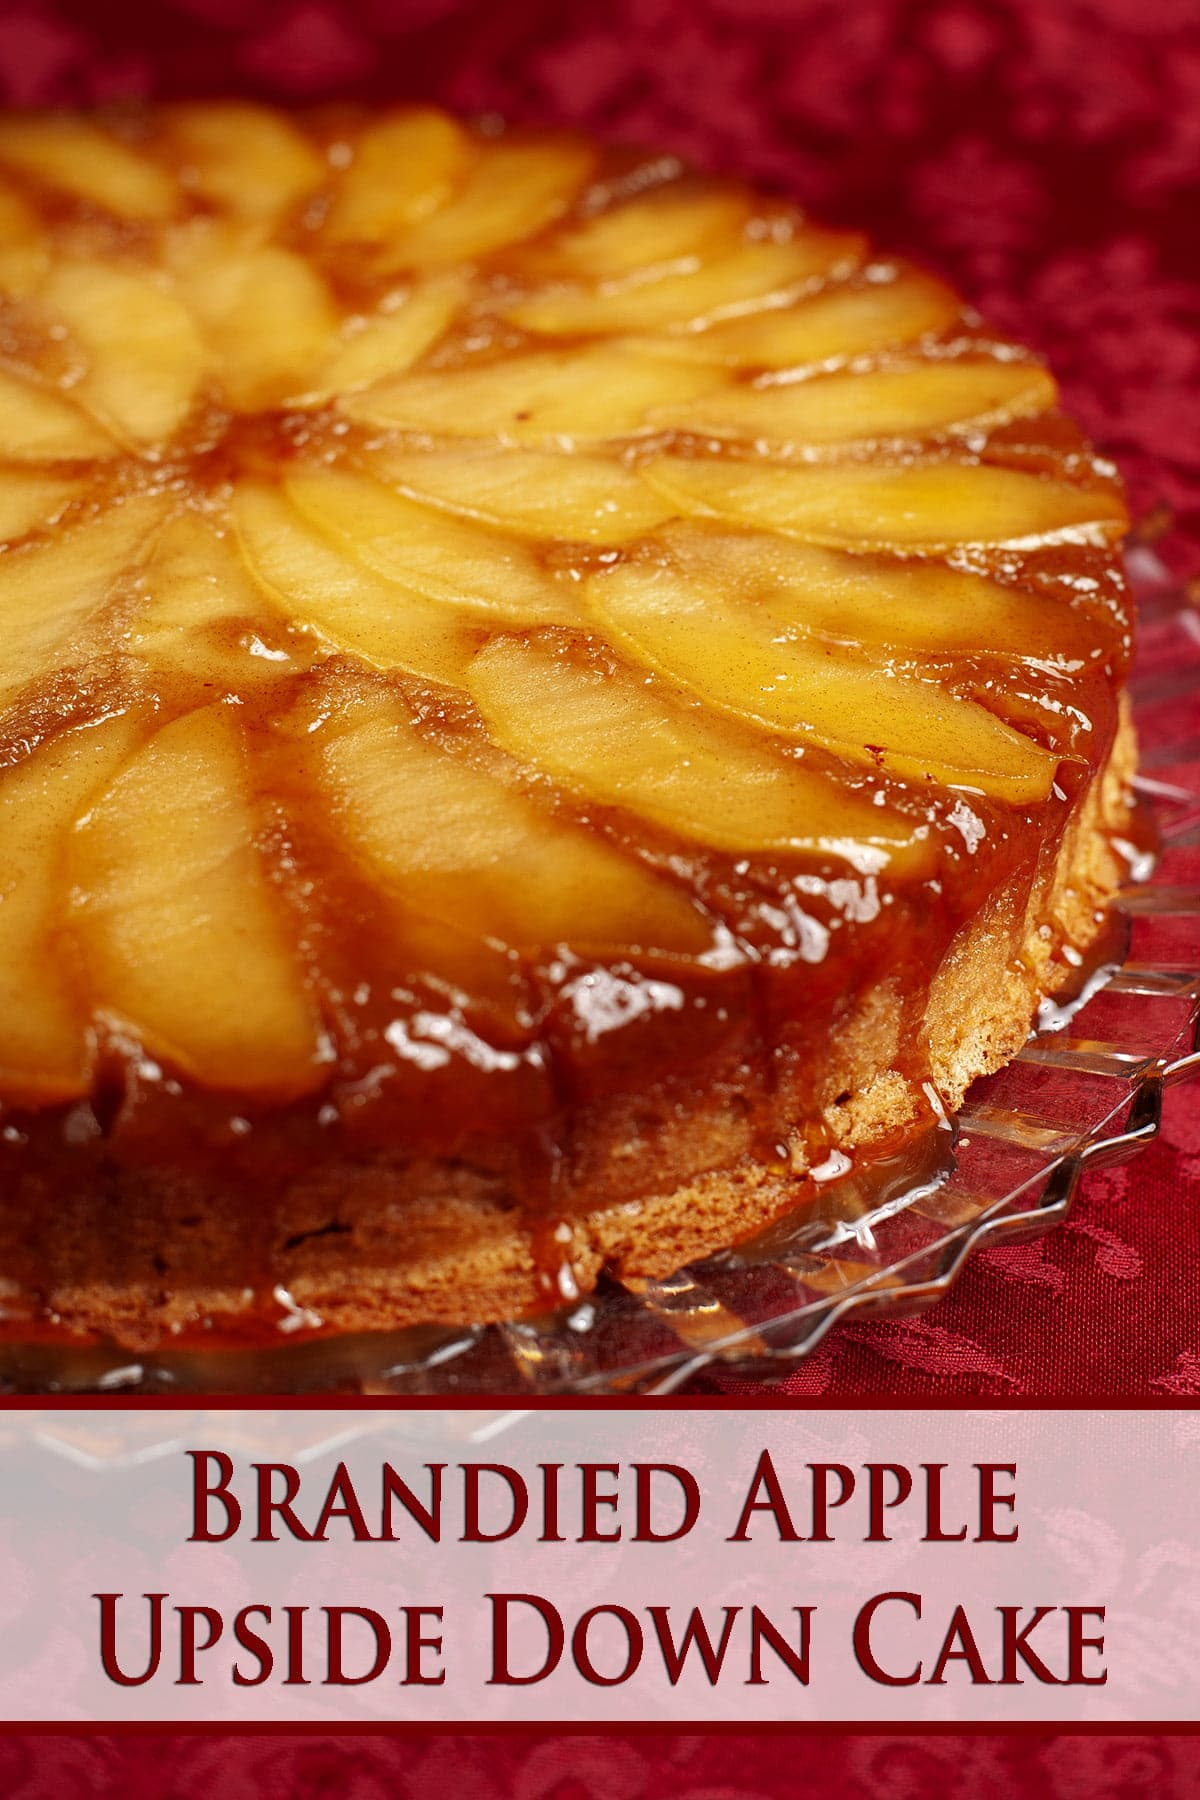 An apple upside down cake, with caramel dripping down from the top edge. It's against a burgundy fabric background.